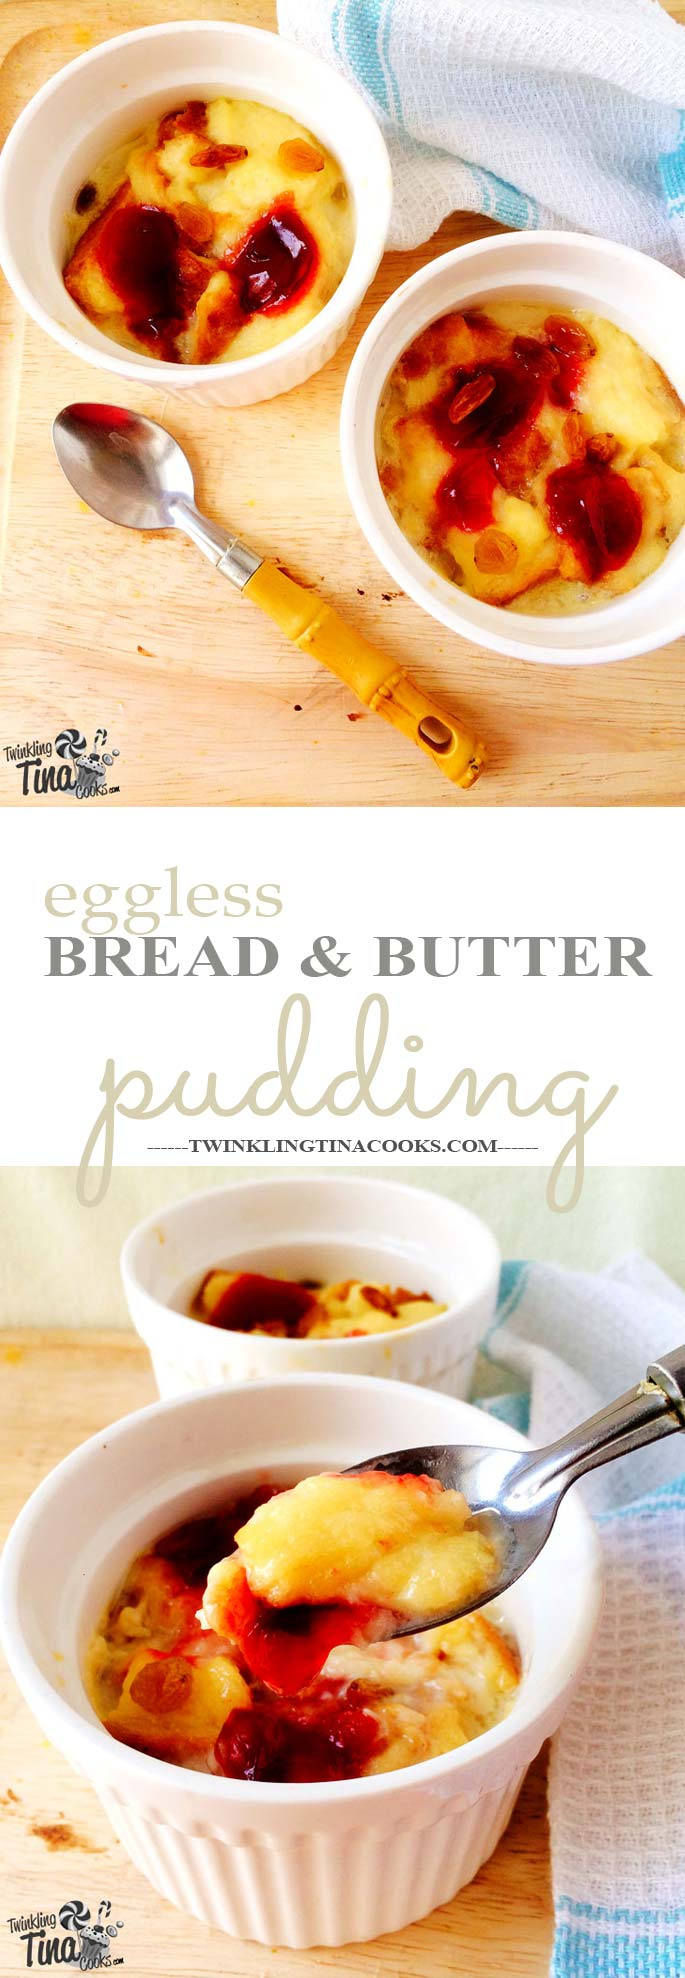 eggless-bread-and-butter-pudding-easy-vegan-dessert-recipe-pinr